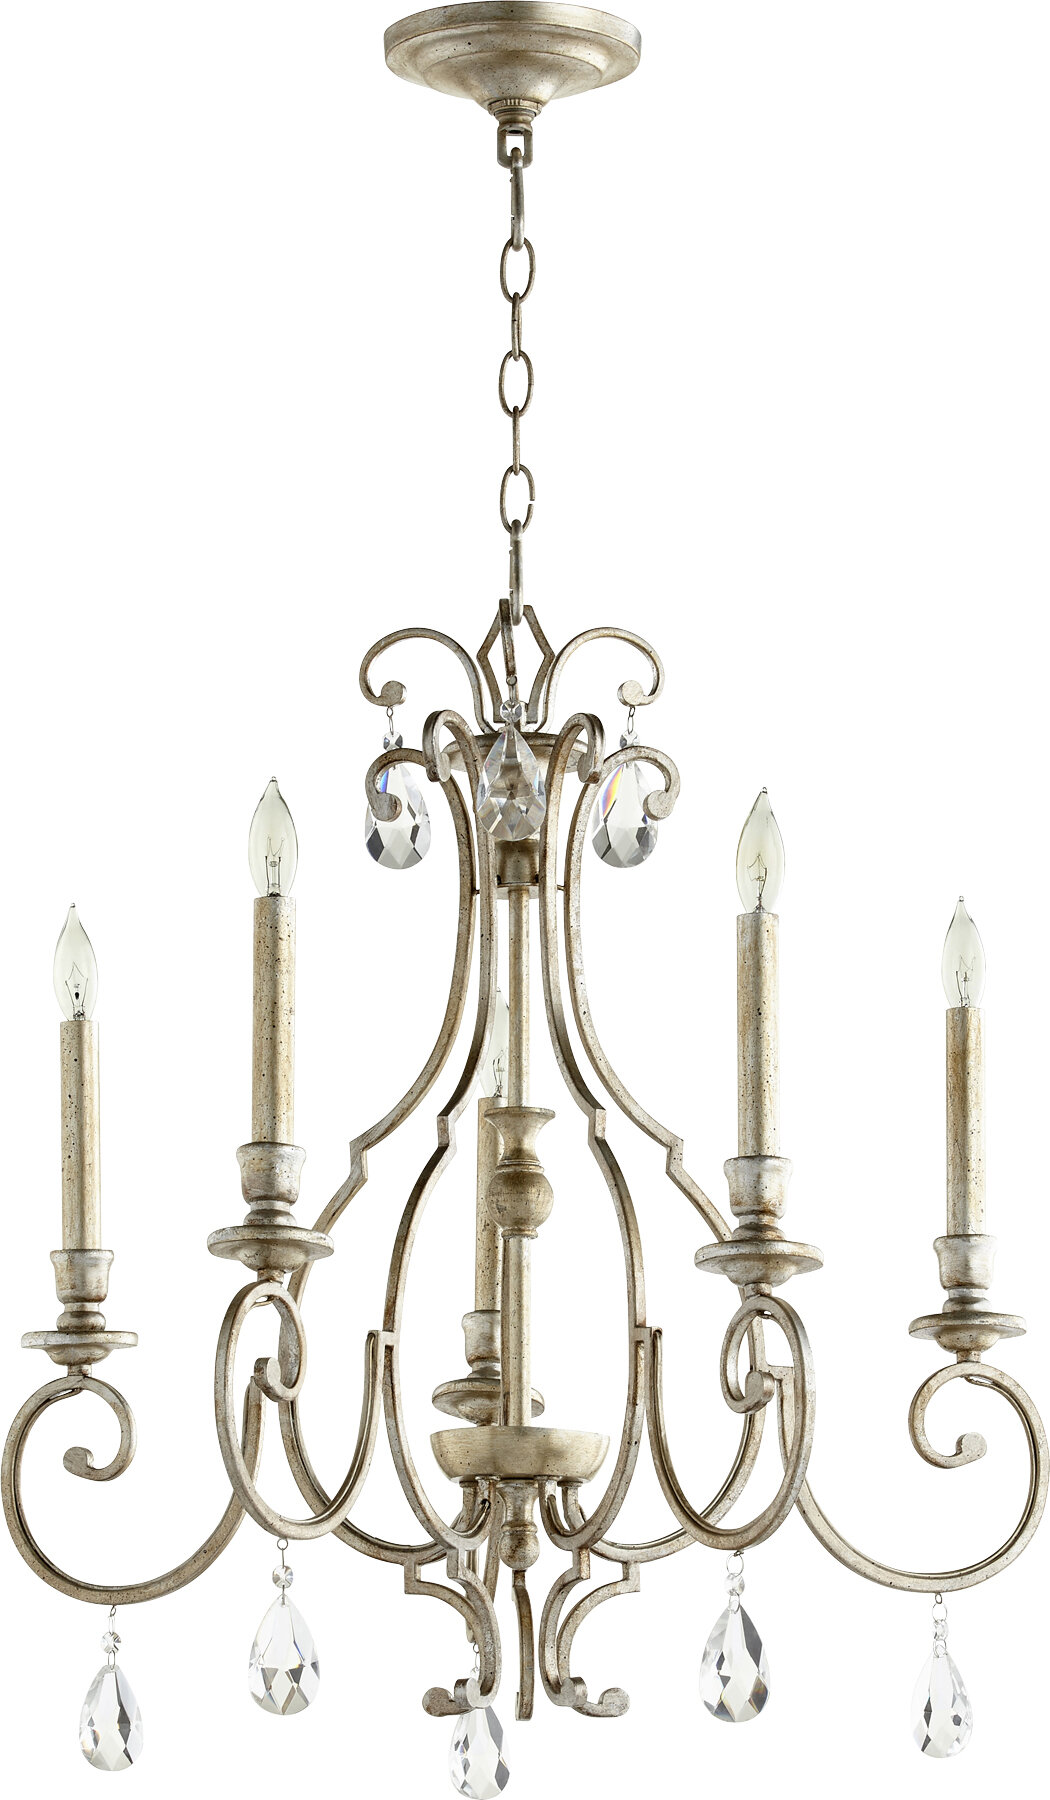 Ophelia Co Richason 5 Light Candle Style Classic Traditional Chandelier Reviews Wayfair Ca